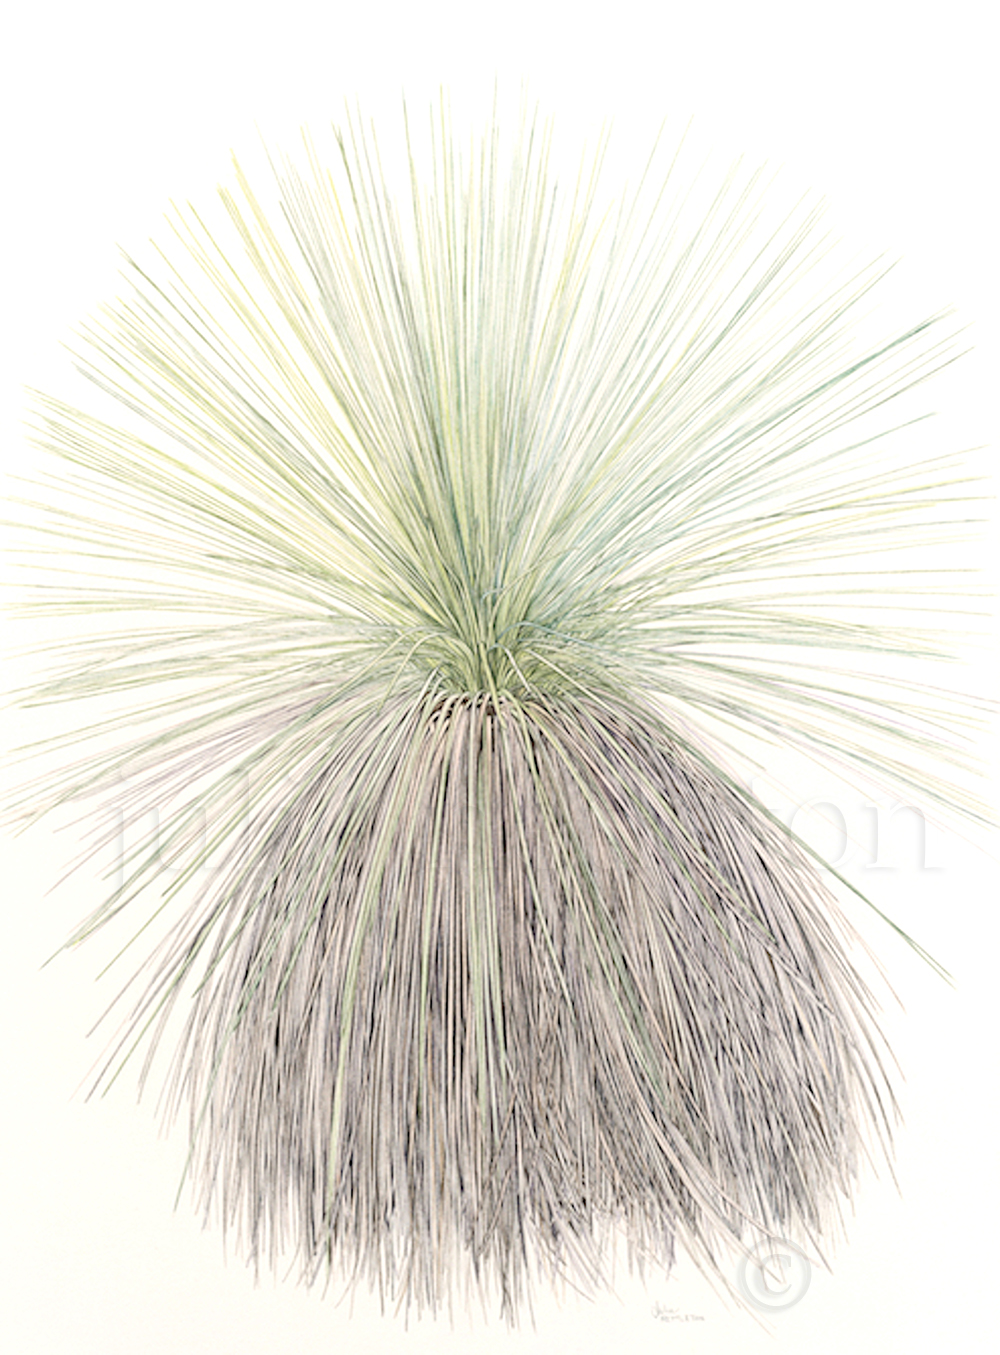 Xanthorrhoea-resinosa-Grass-Tree-100-yrs-old